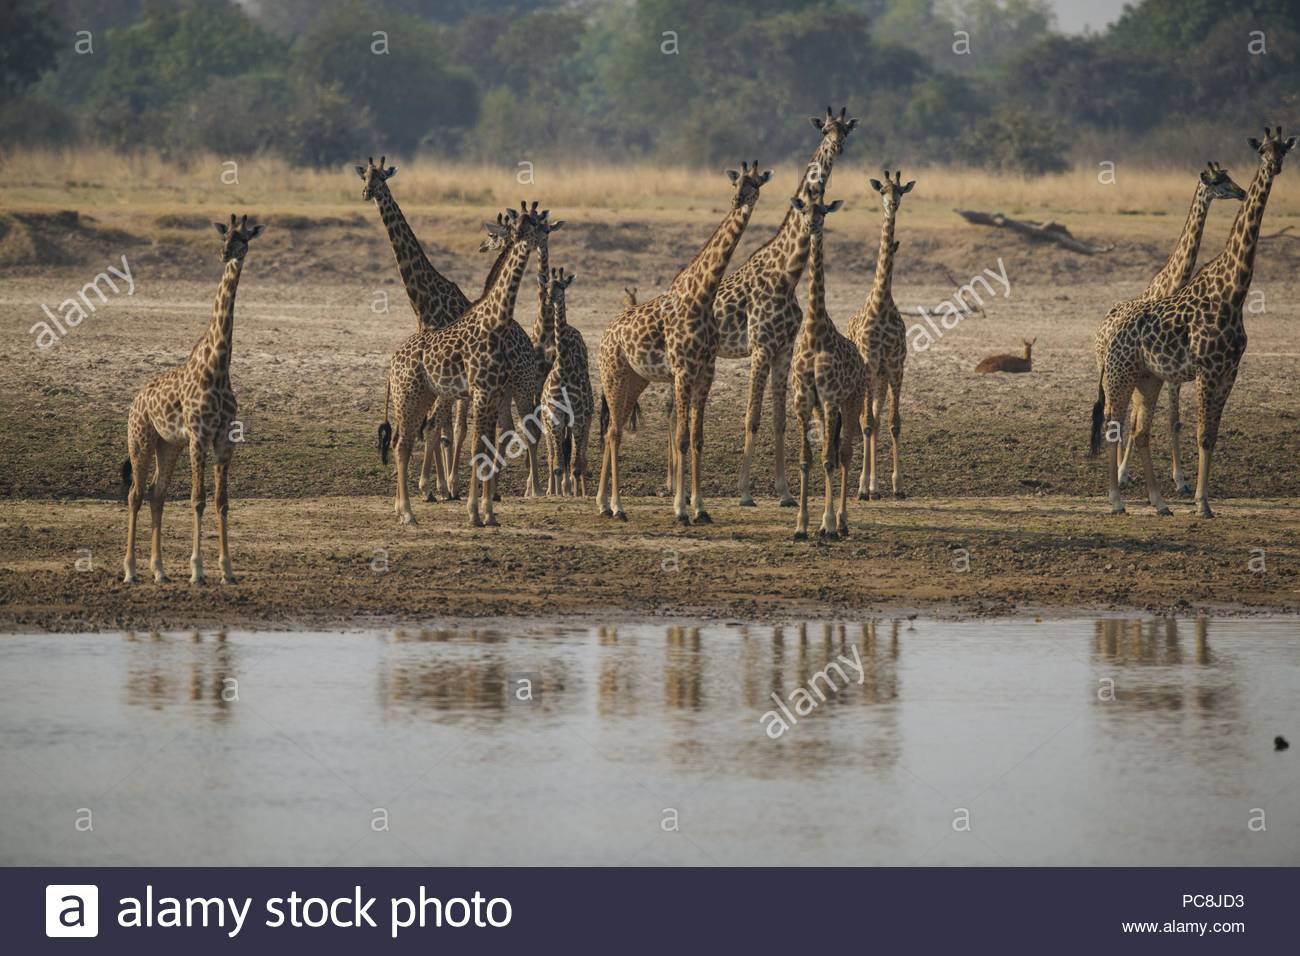 Thornicrofts Giraffes, giraffa camelopardalis thornicrofti, checking the area. - Stock Image